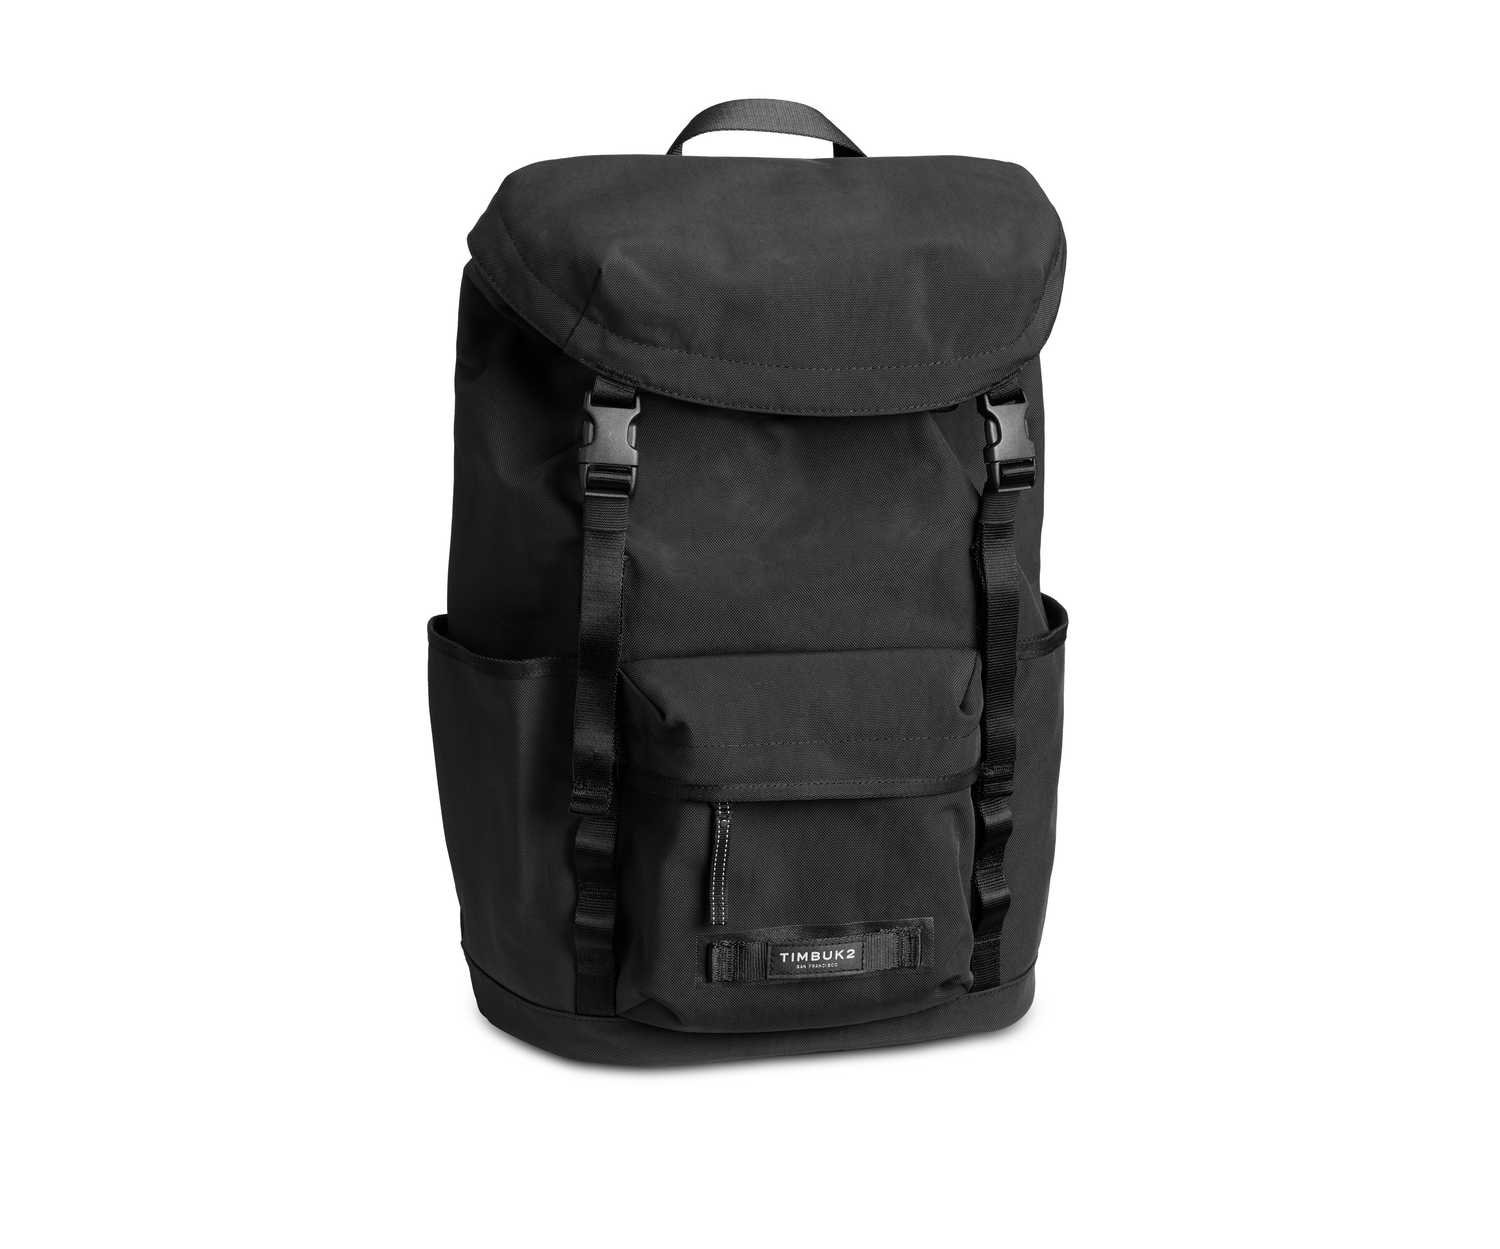 Timbuk2 2153 - Lug Launch Pack